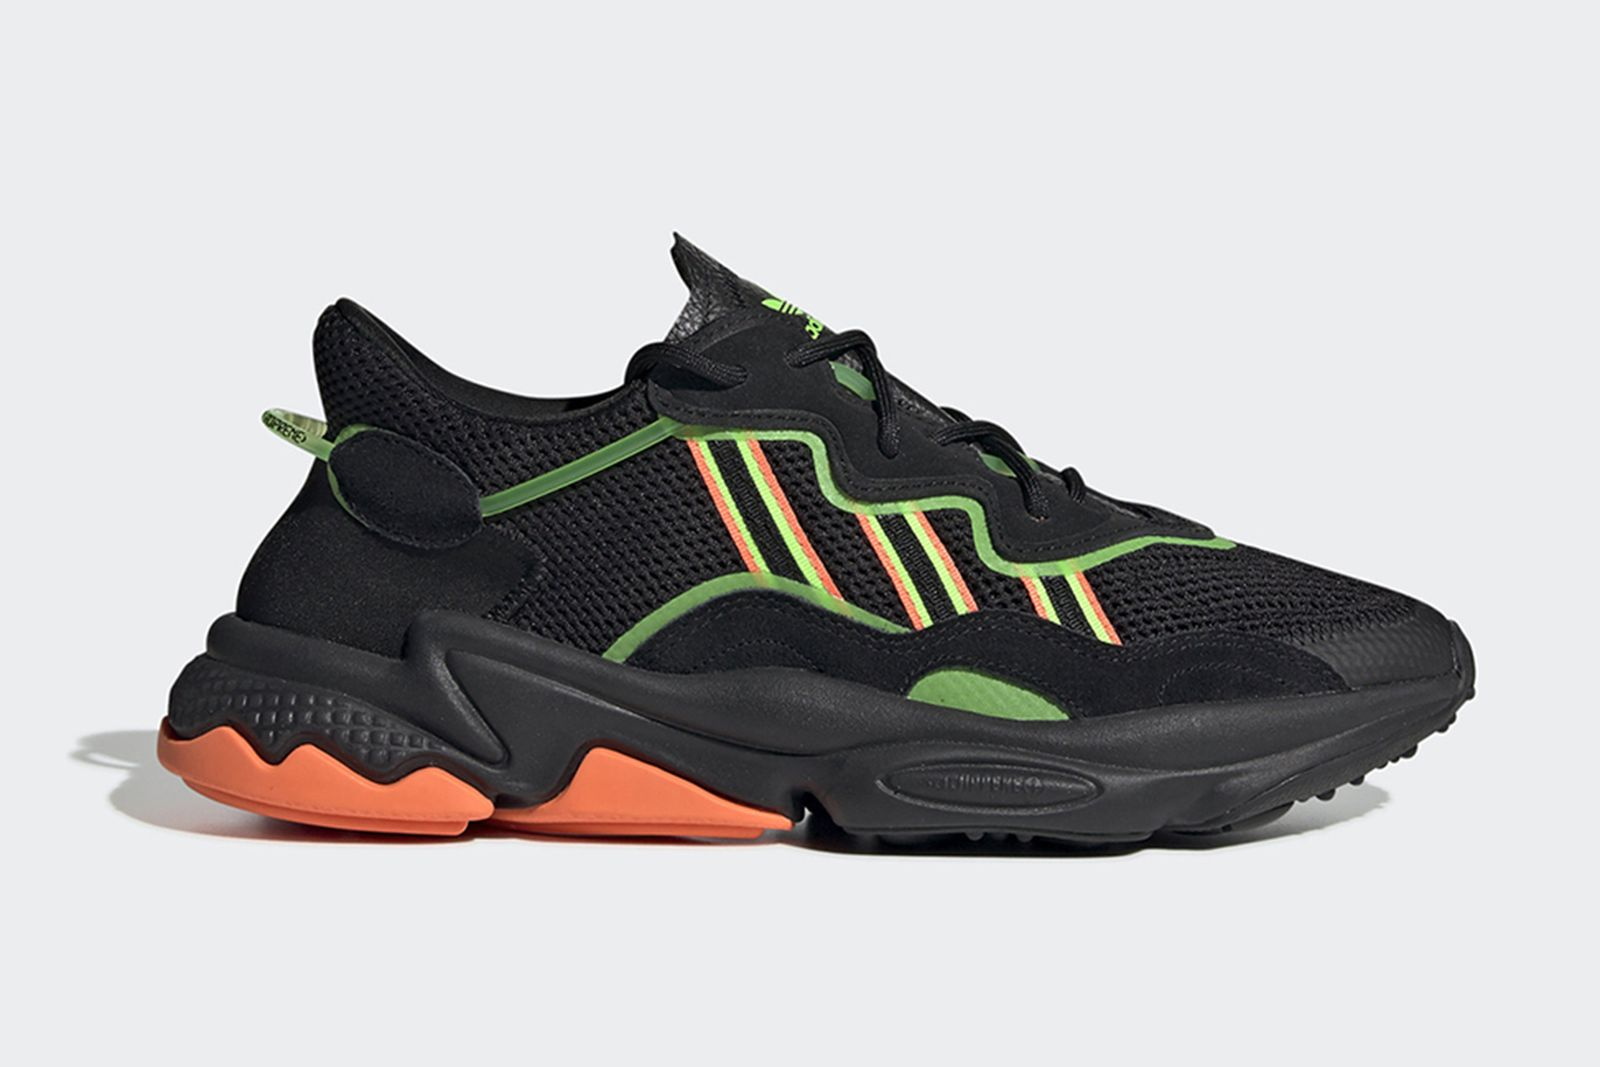 esta noche Acurrucarse clima  Retro Your Rotation With These '90s Inspired adidas Originals